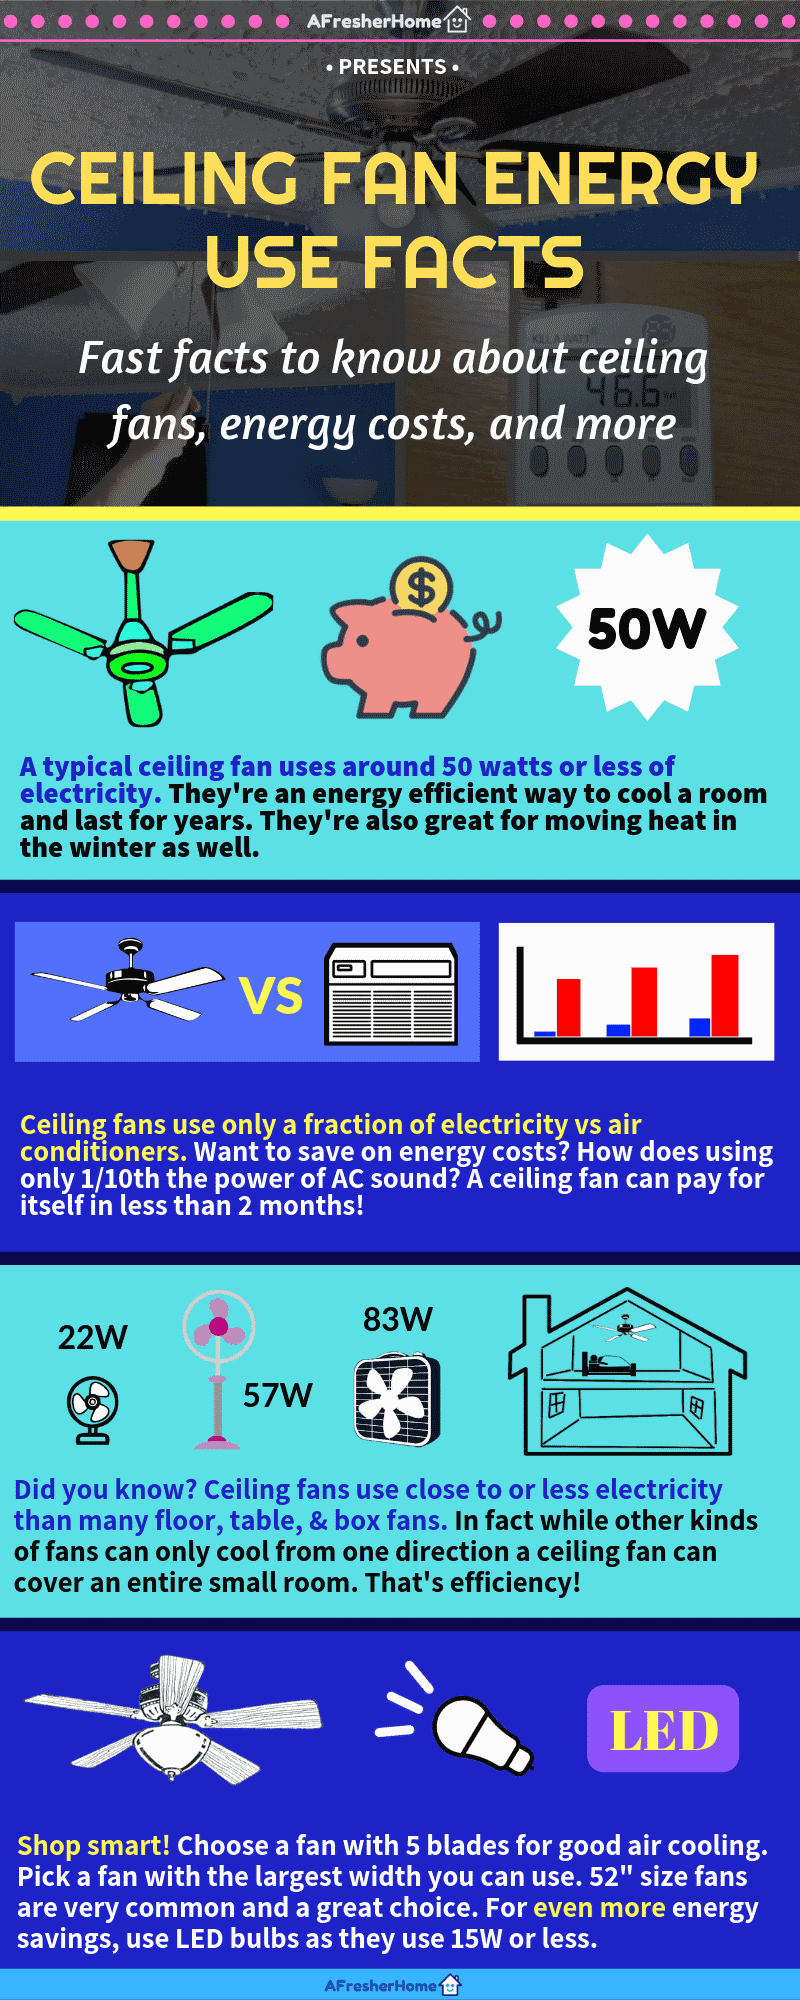 Infographic for ceiling fan energy use facts and information